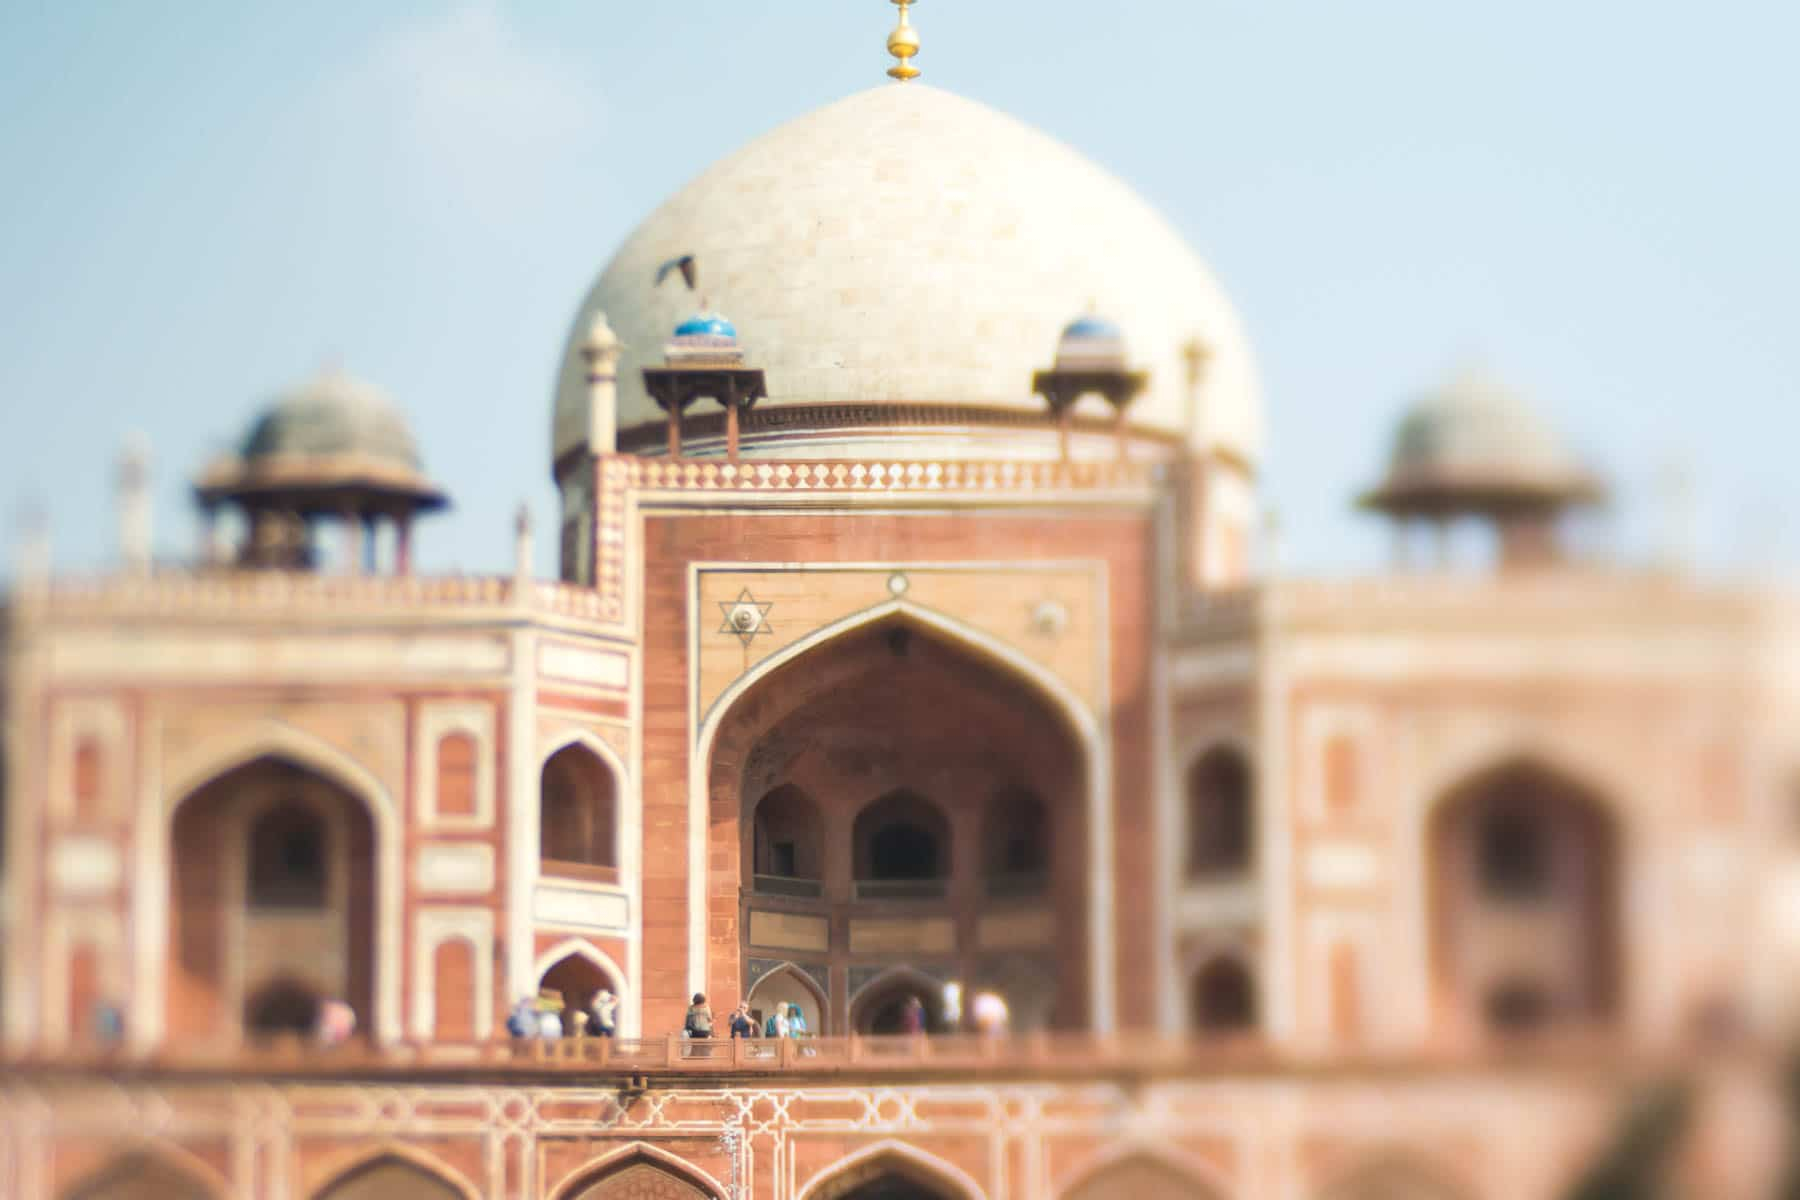 Lensbaby Edge 50 Optic review - Humayun's tomb in New Delhi, India shot with a Lensbaby - Lost With Purpose